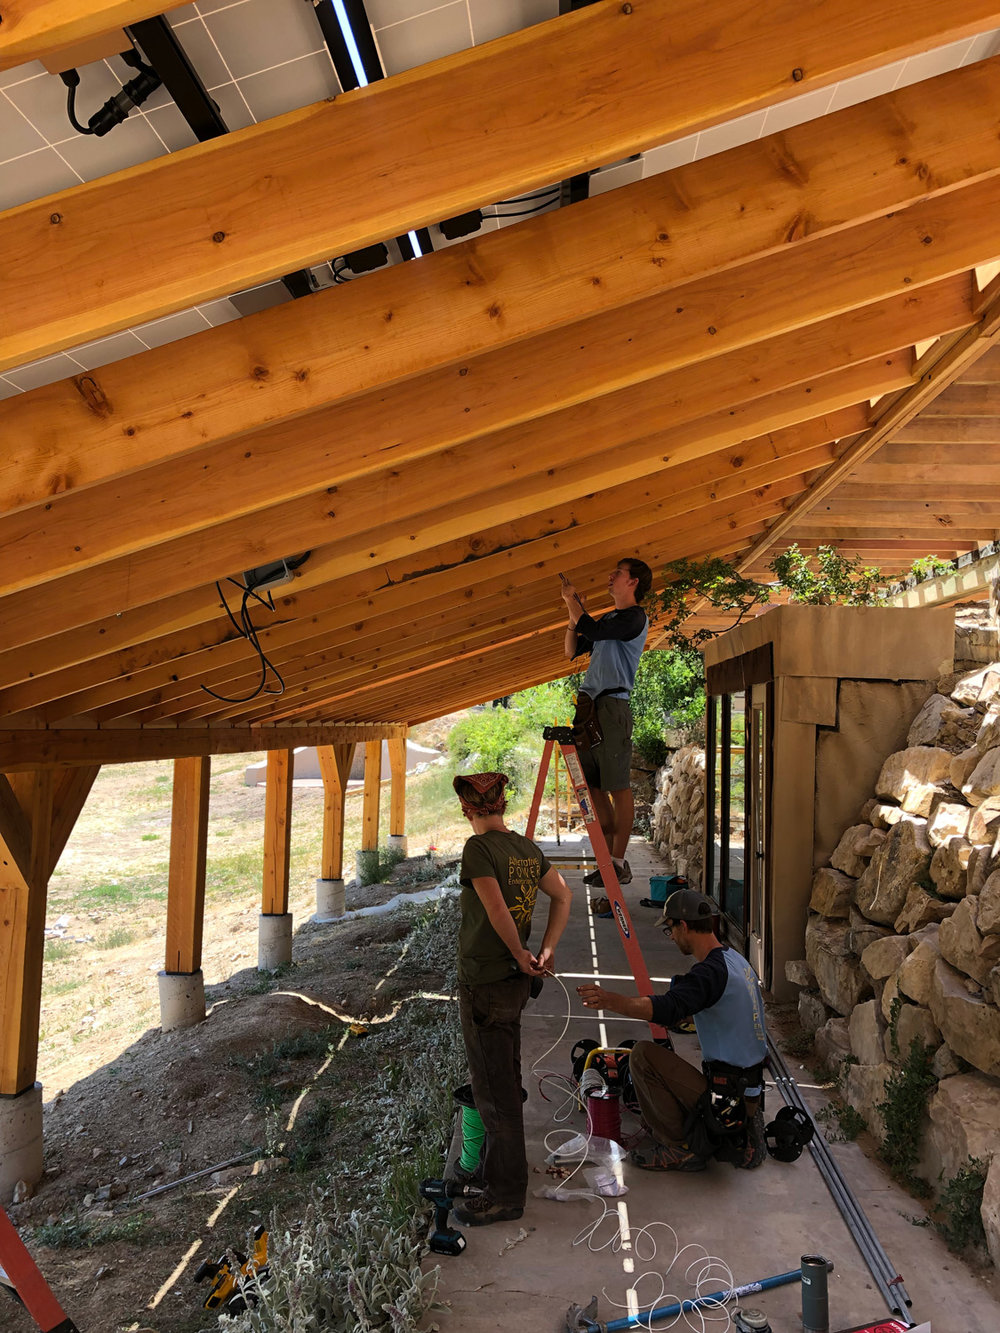 The solar installation process for the sunridge earthship